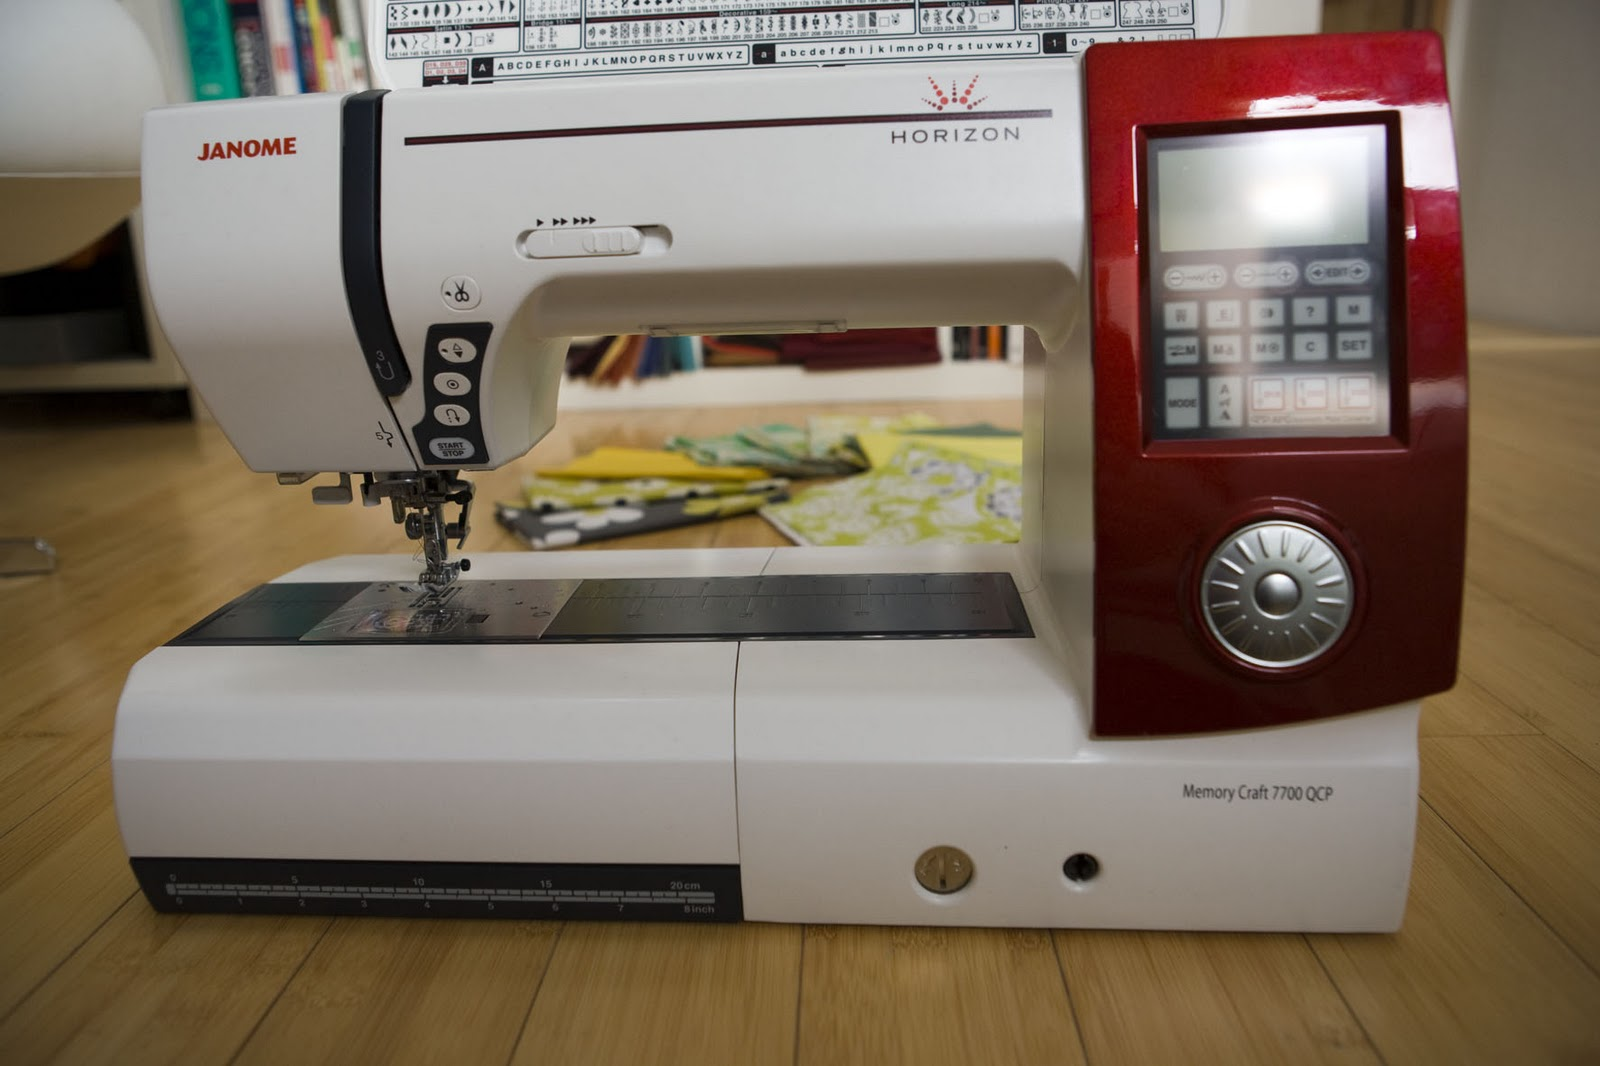 Needles And Lemons Janome Horizon Memory Craft 7700 Sewing Machine